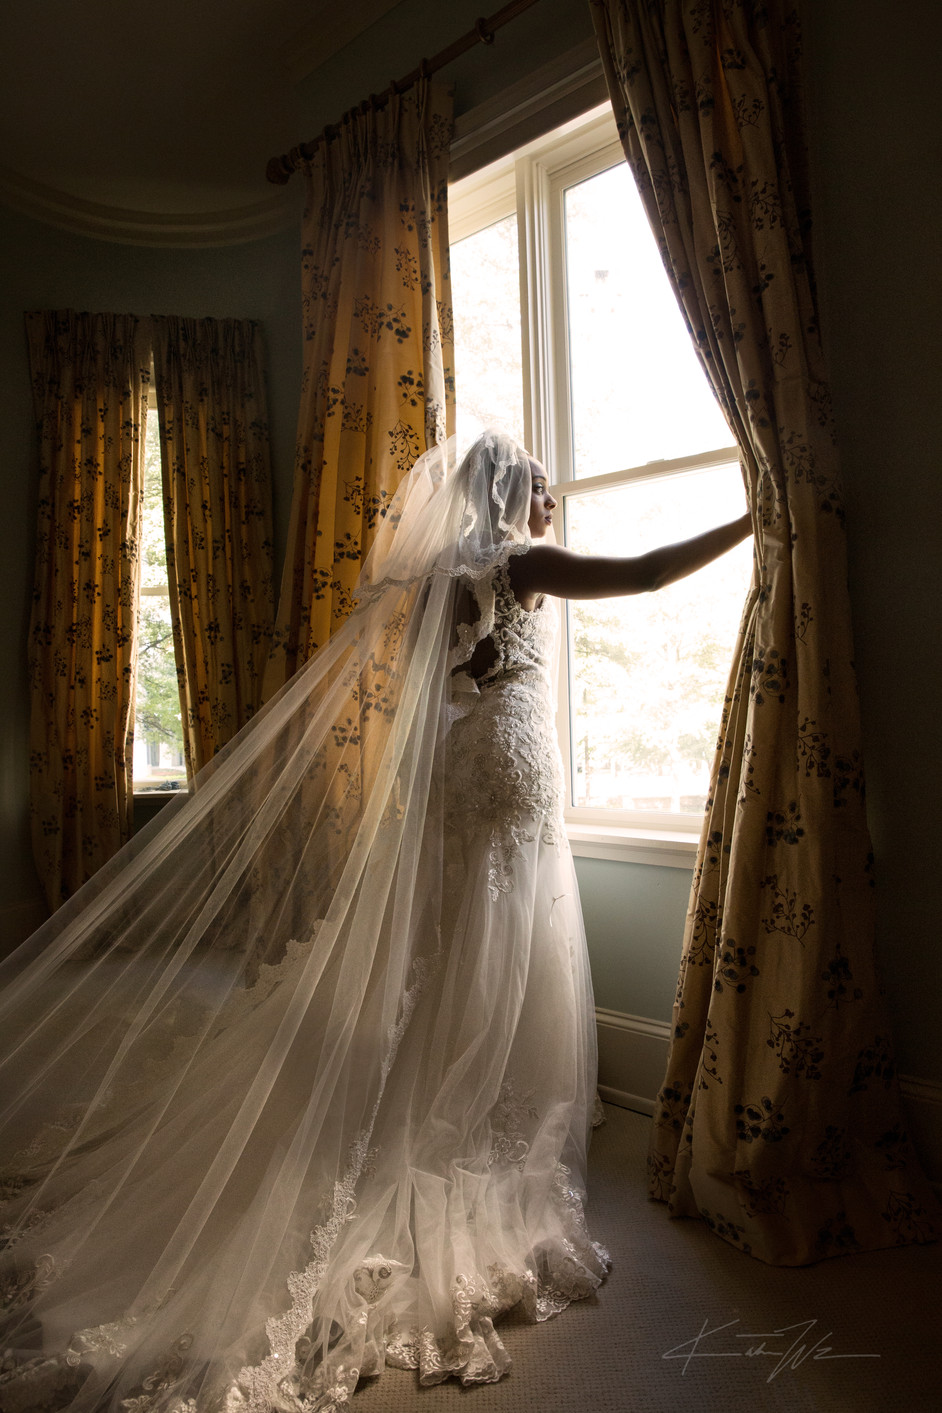 6 TIPS TO MAKE YOUR WEDDING PHOTOS PICTURE PERFECT